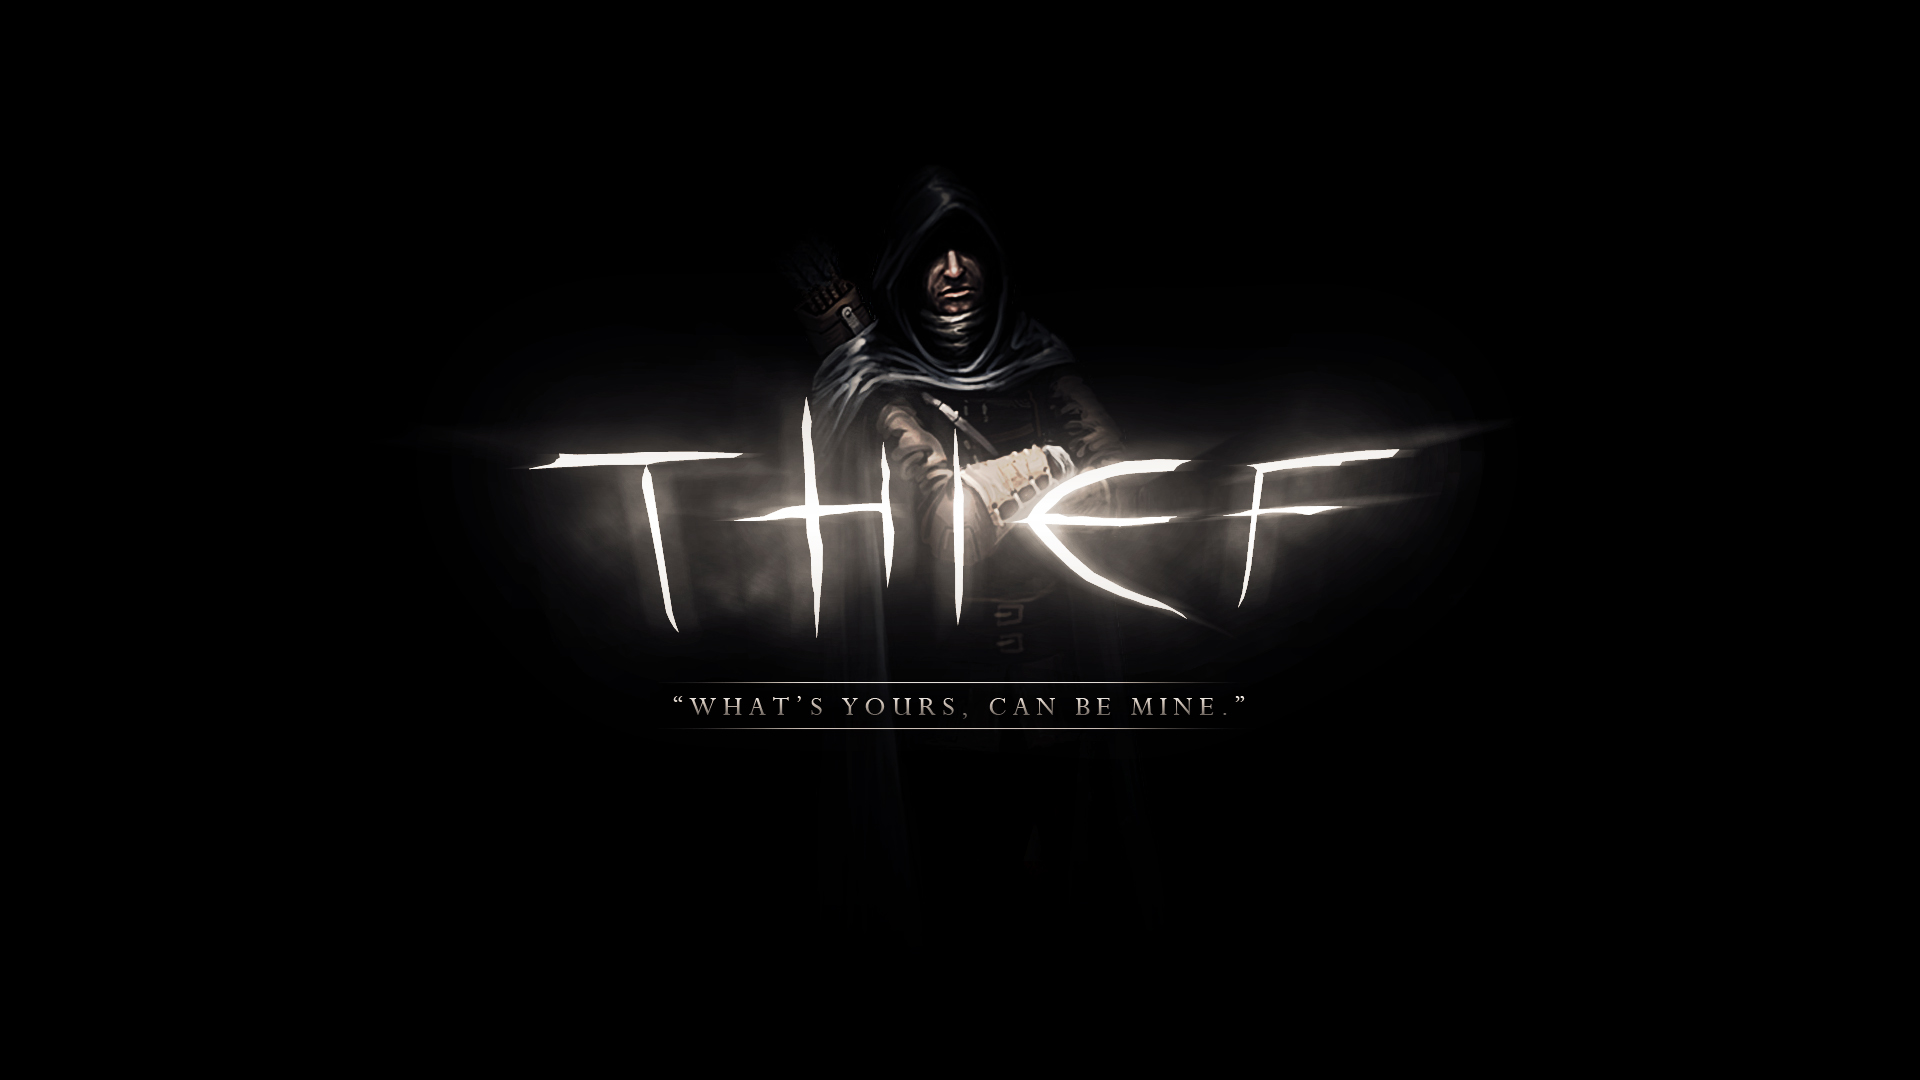 e3: thief 4 gameplay impressions and thoughts - illgaming